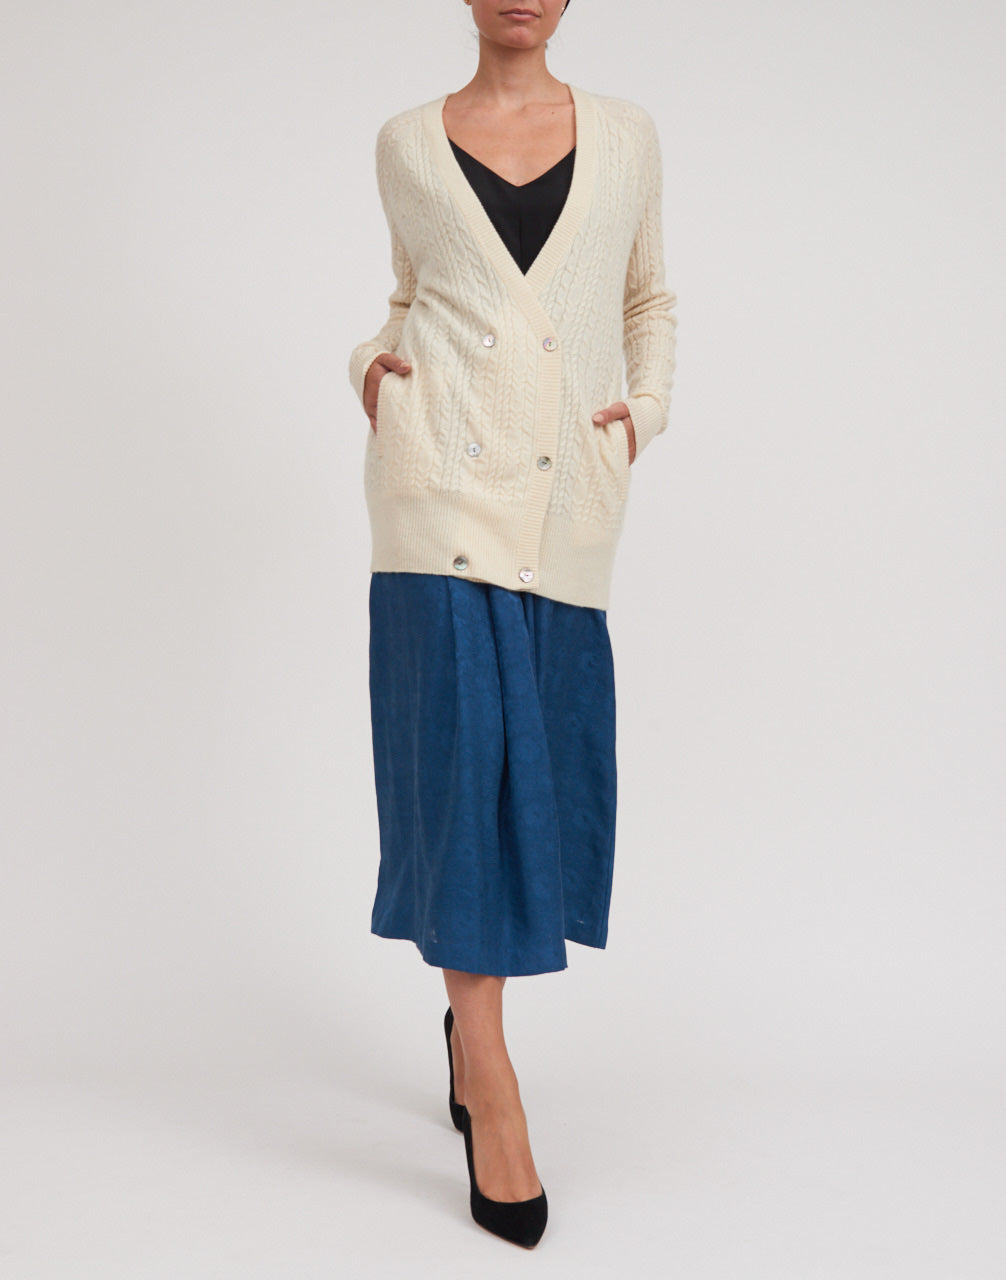 Women's Cashmere Cable Cardigan w/ MOP Buttons